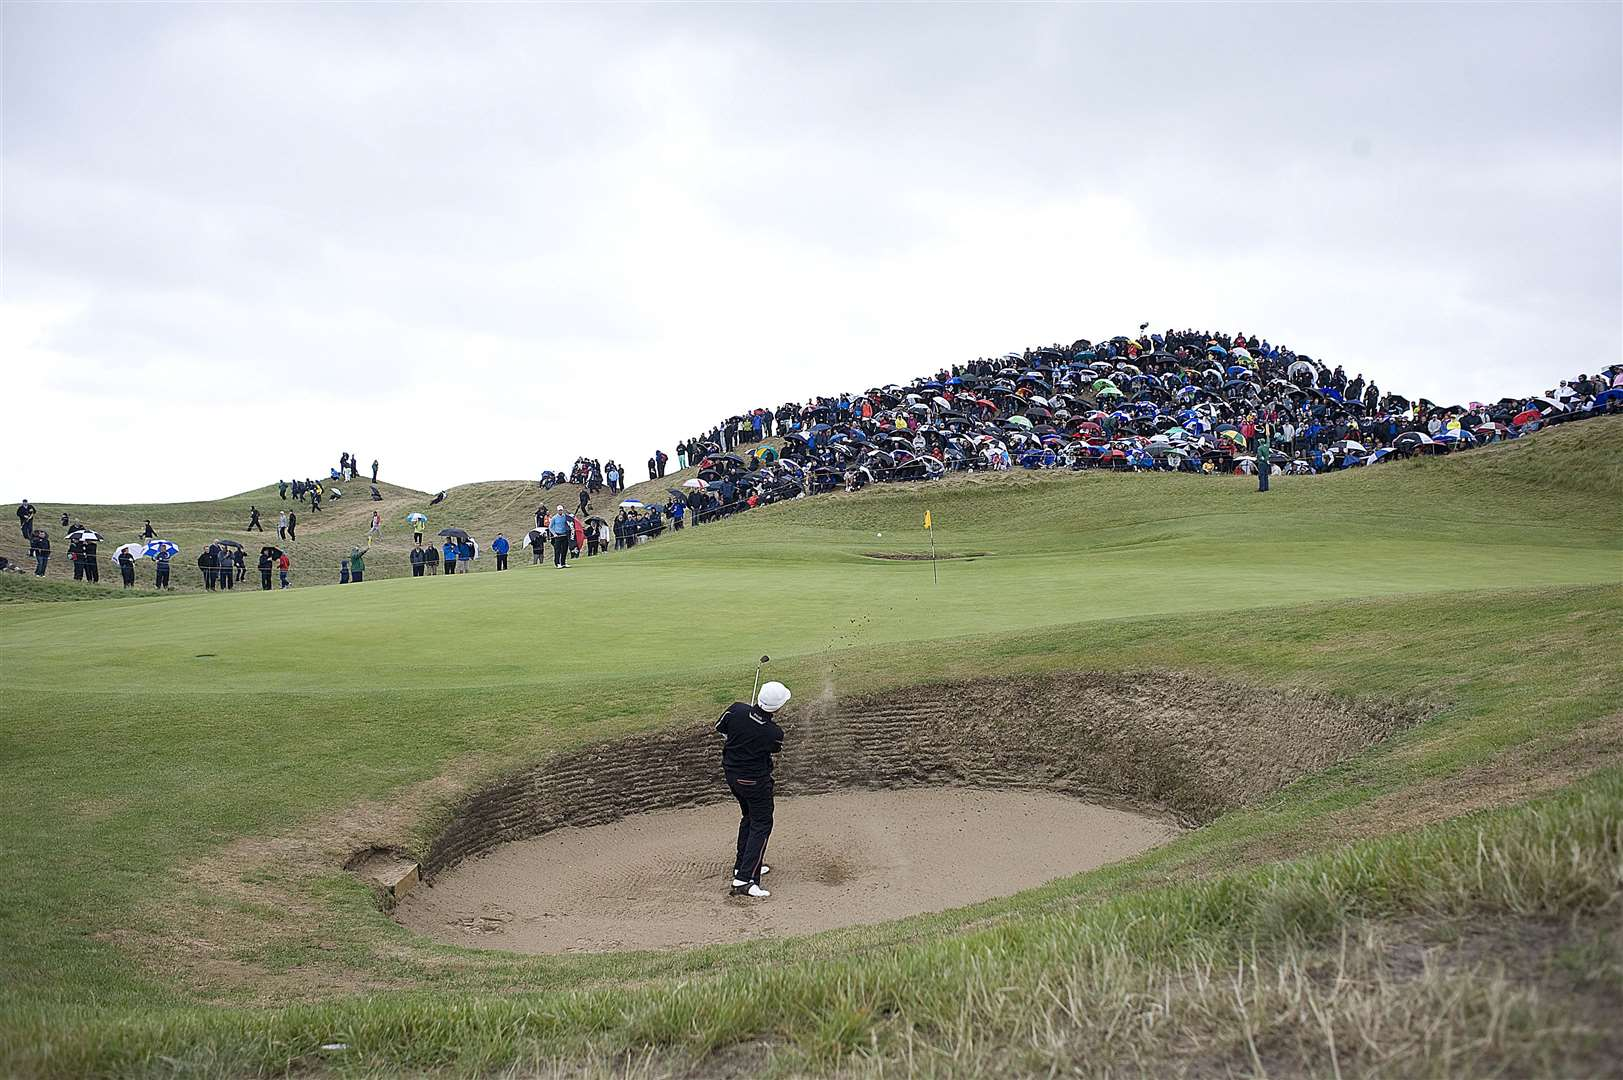 Players will be competing with a new handicap system when golf resumes Picture: Barry Goodwin